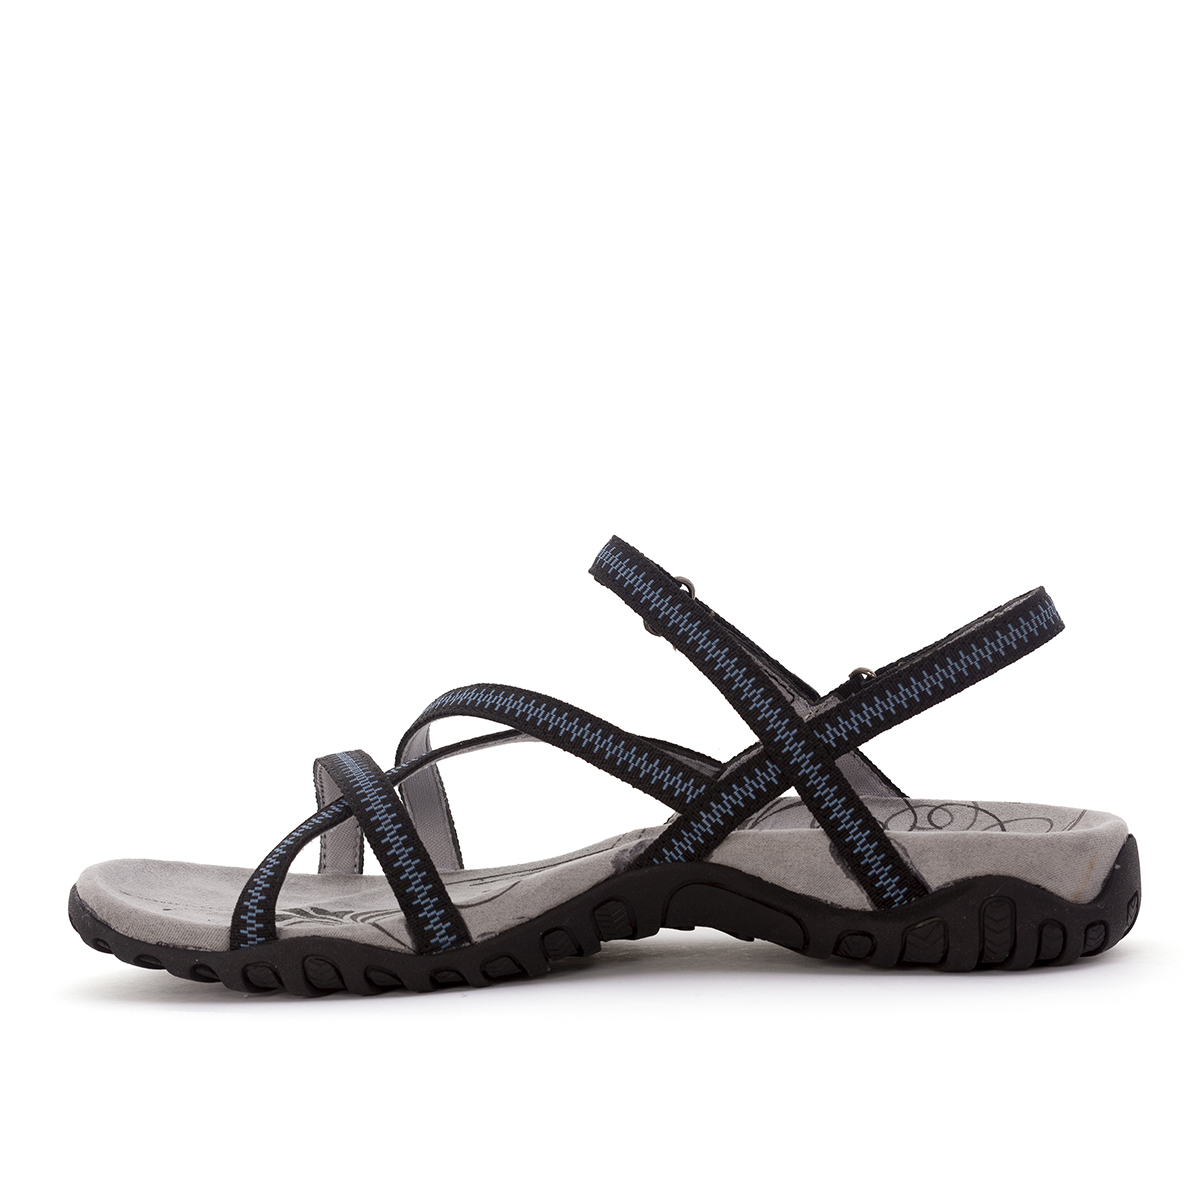 WOMAN'S TENA SANDALS BLACK